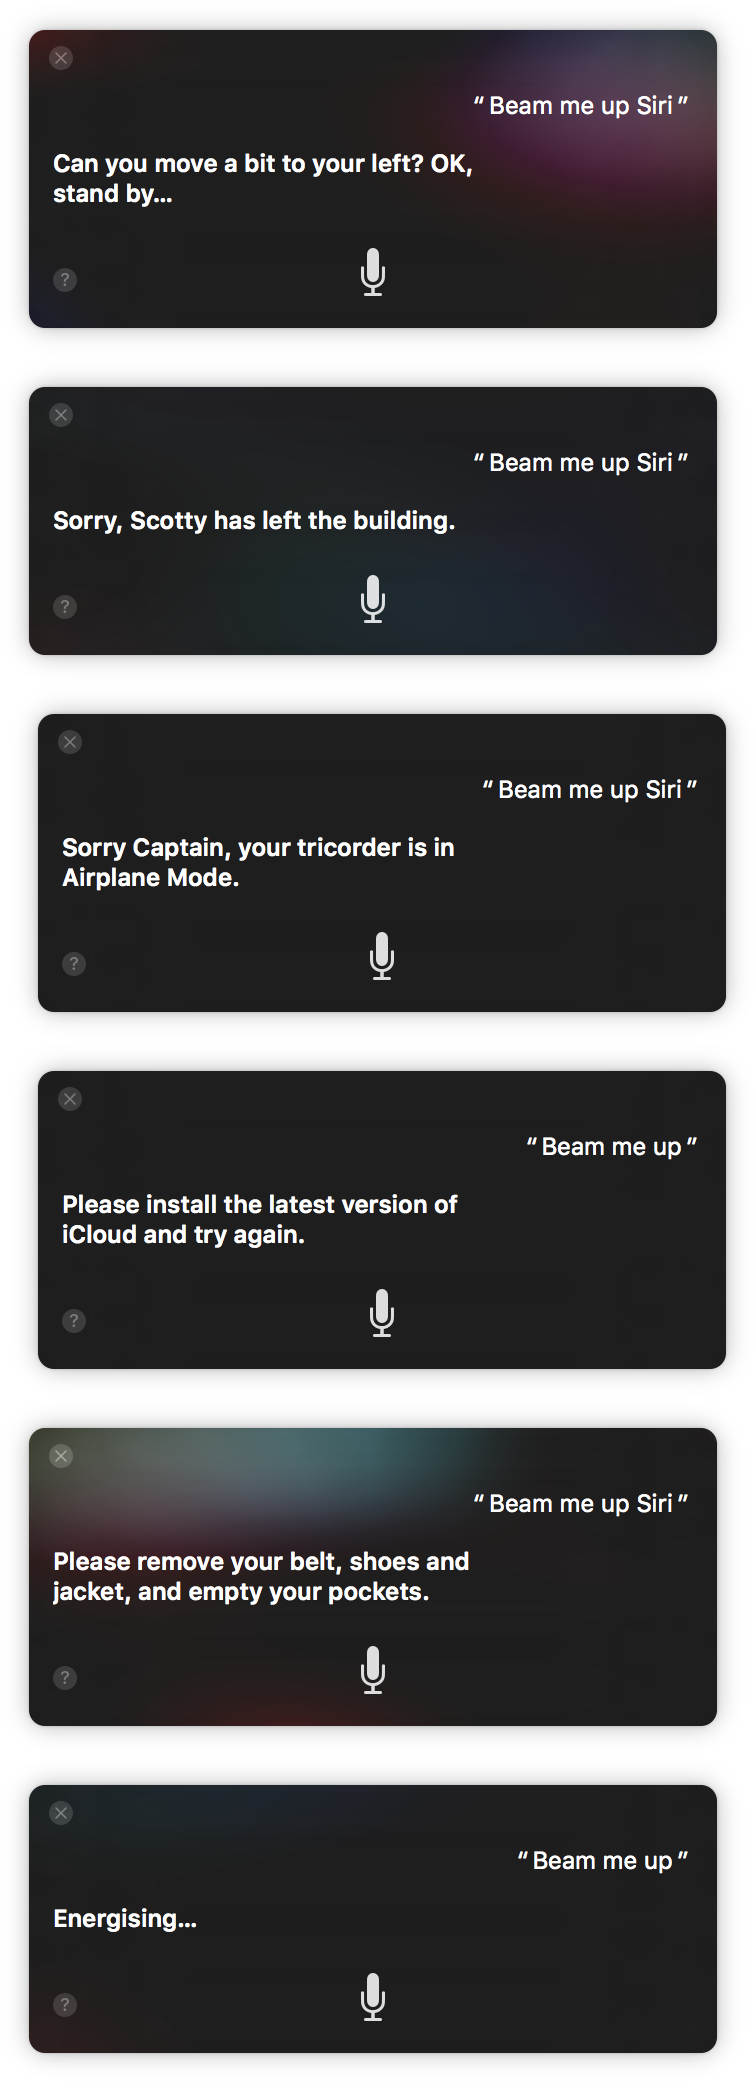 Beam me up, Siri